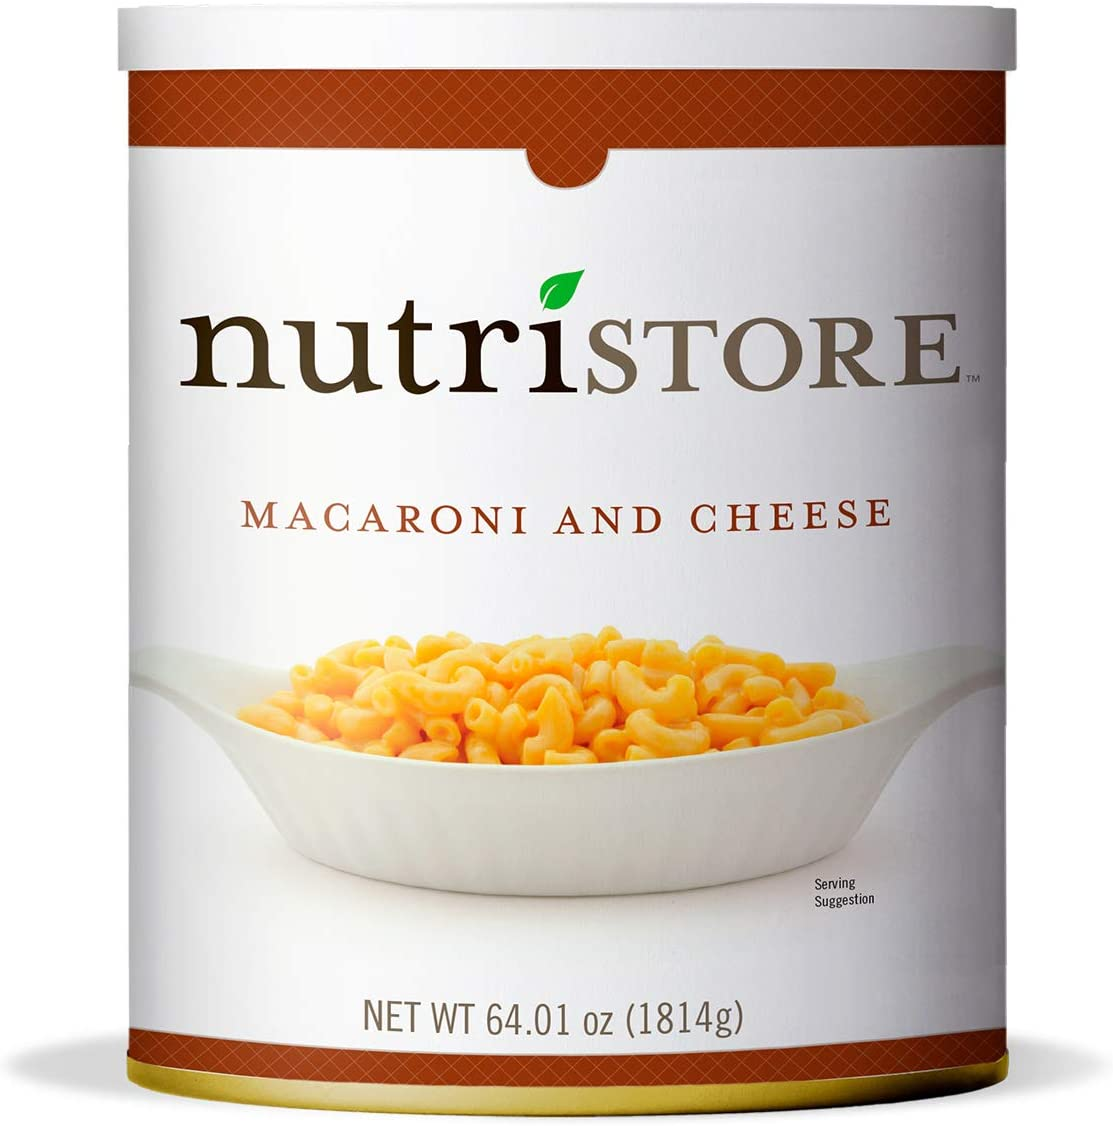 Nutristore Macaroni and Cheese #10 Can | Premium Variety Ready to Eat Meals | Bulk Emergency Food Supply | Breakfast, Lunch, Dinner | MRE | Long Term Survival Storage | 25 Year Shelf Life